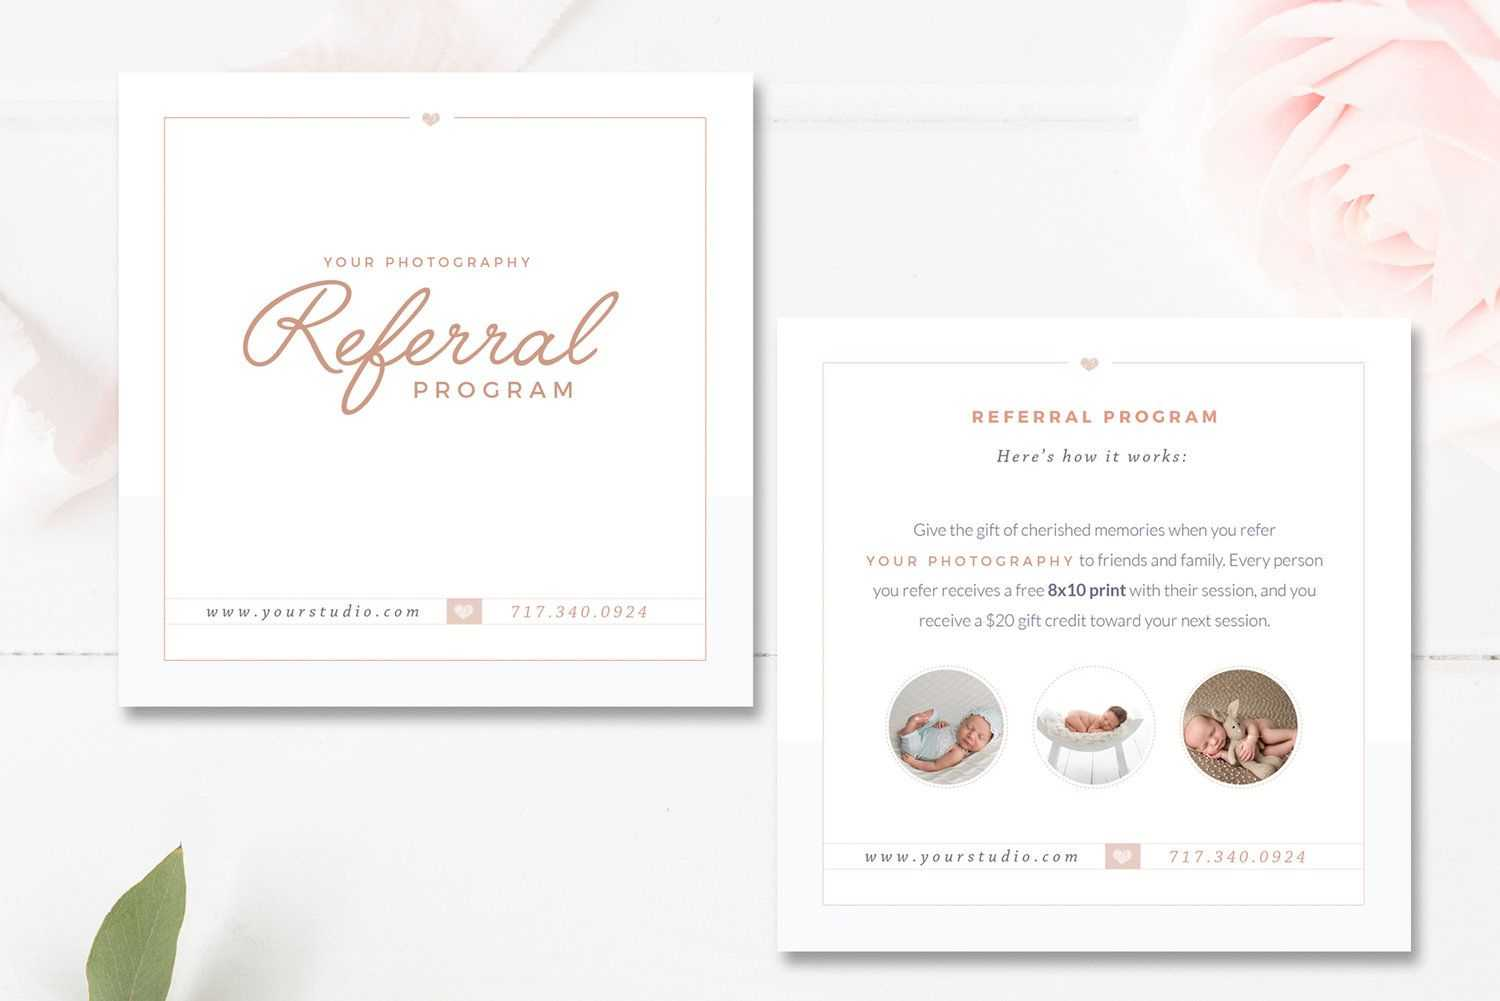 Photography Referral Card Templates, Referral Program Intended For Photography Referral Card Templates